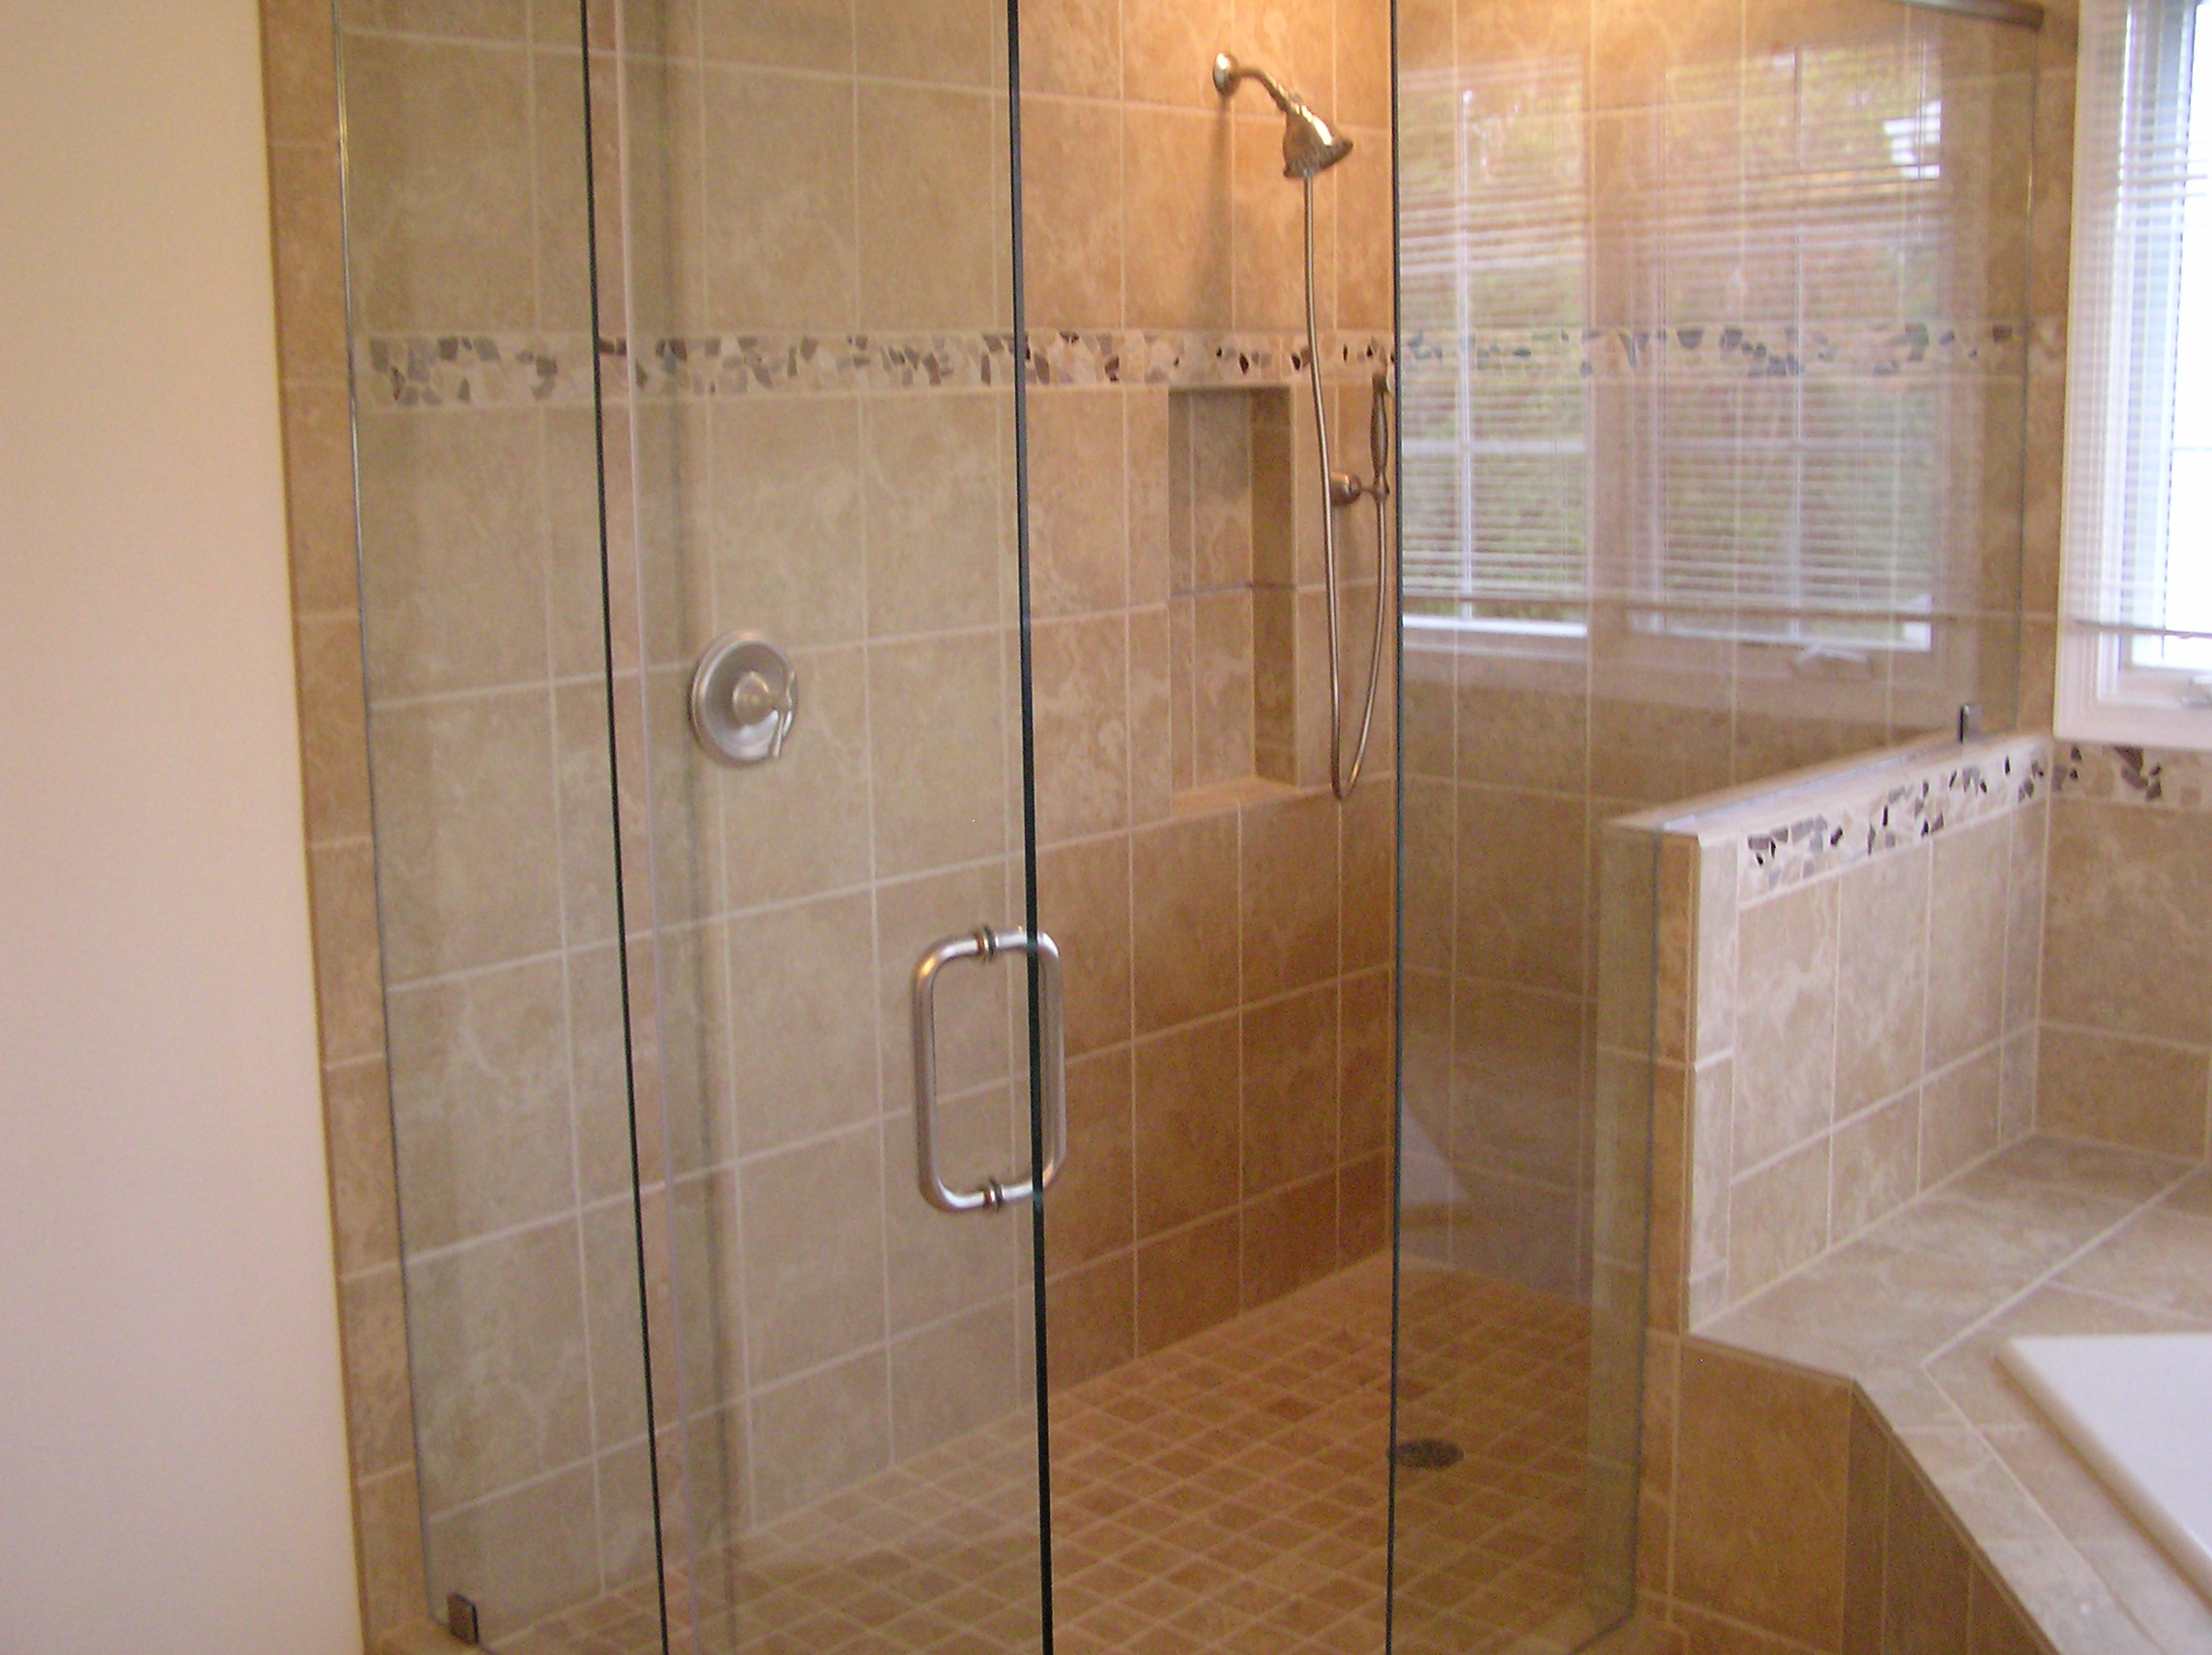 Bathroom remodel ideas homesfeed for Restroom renovation ideas